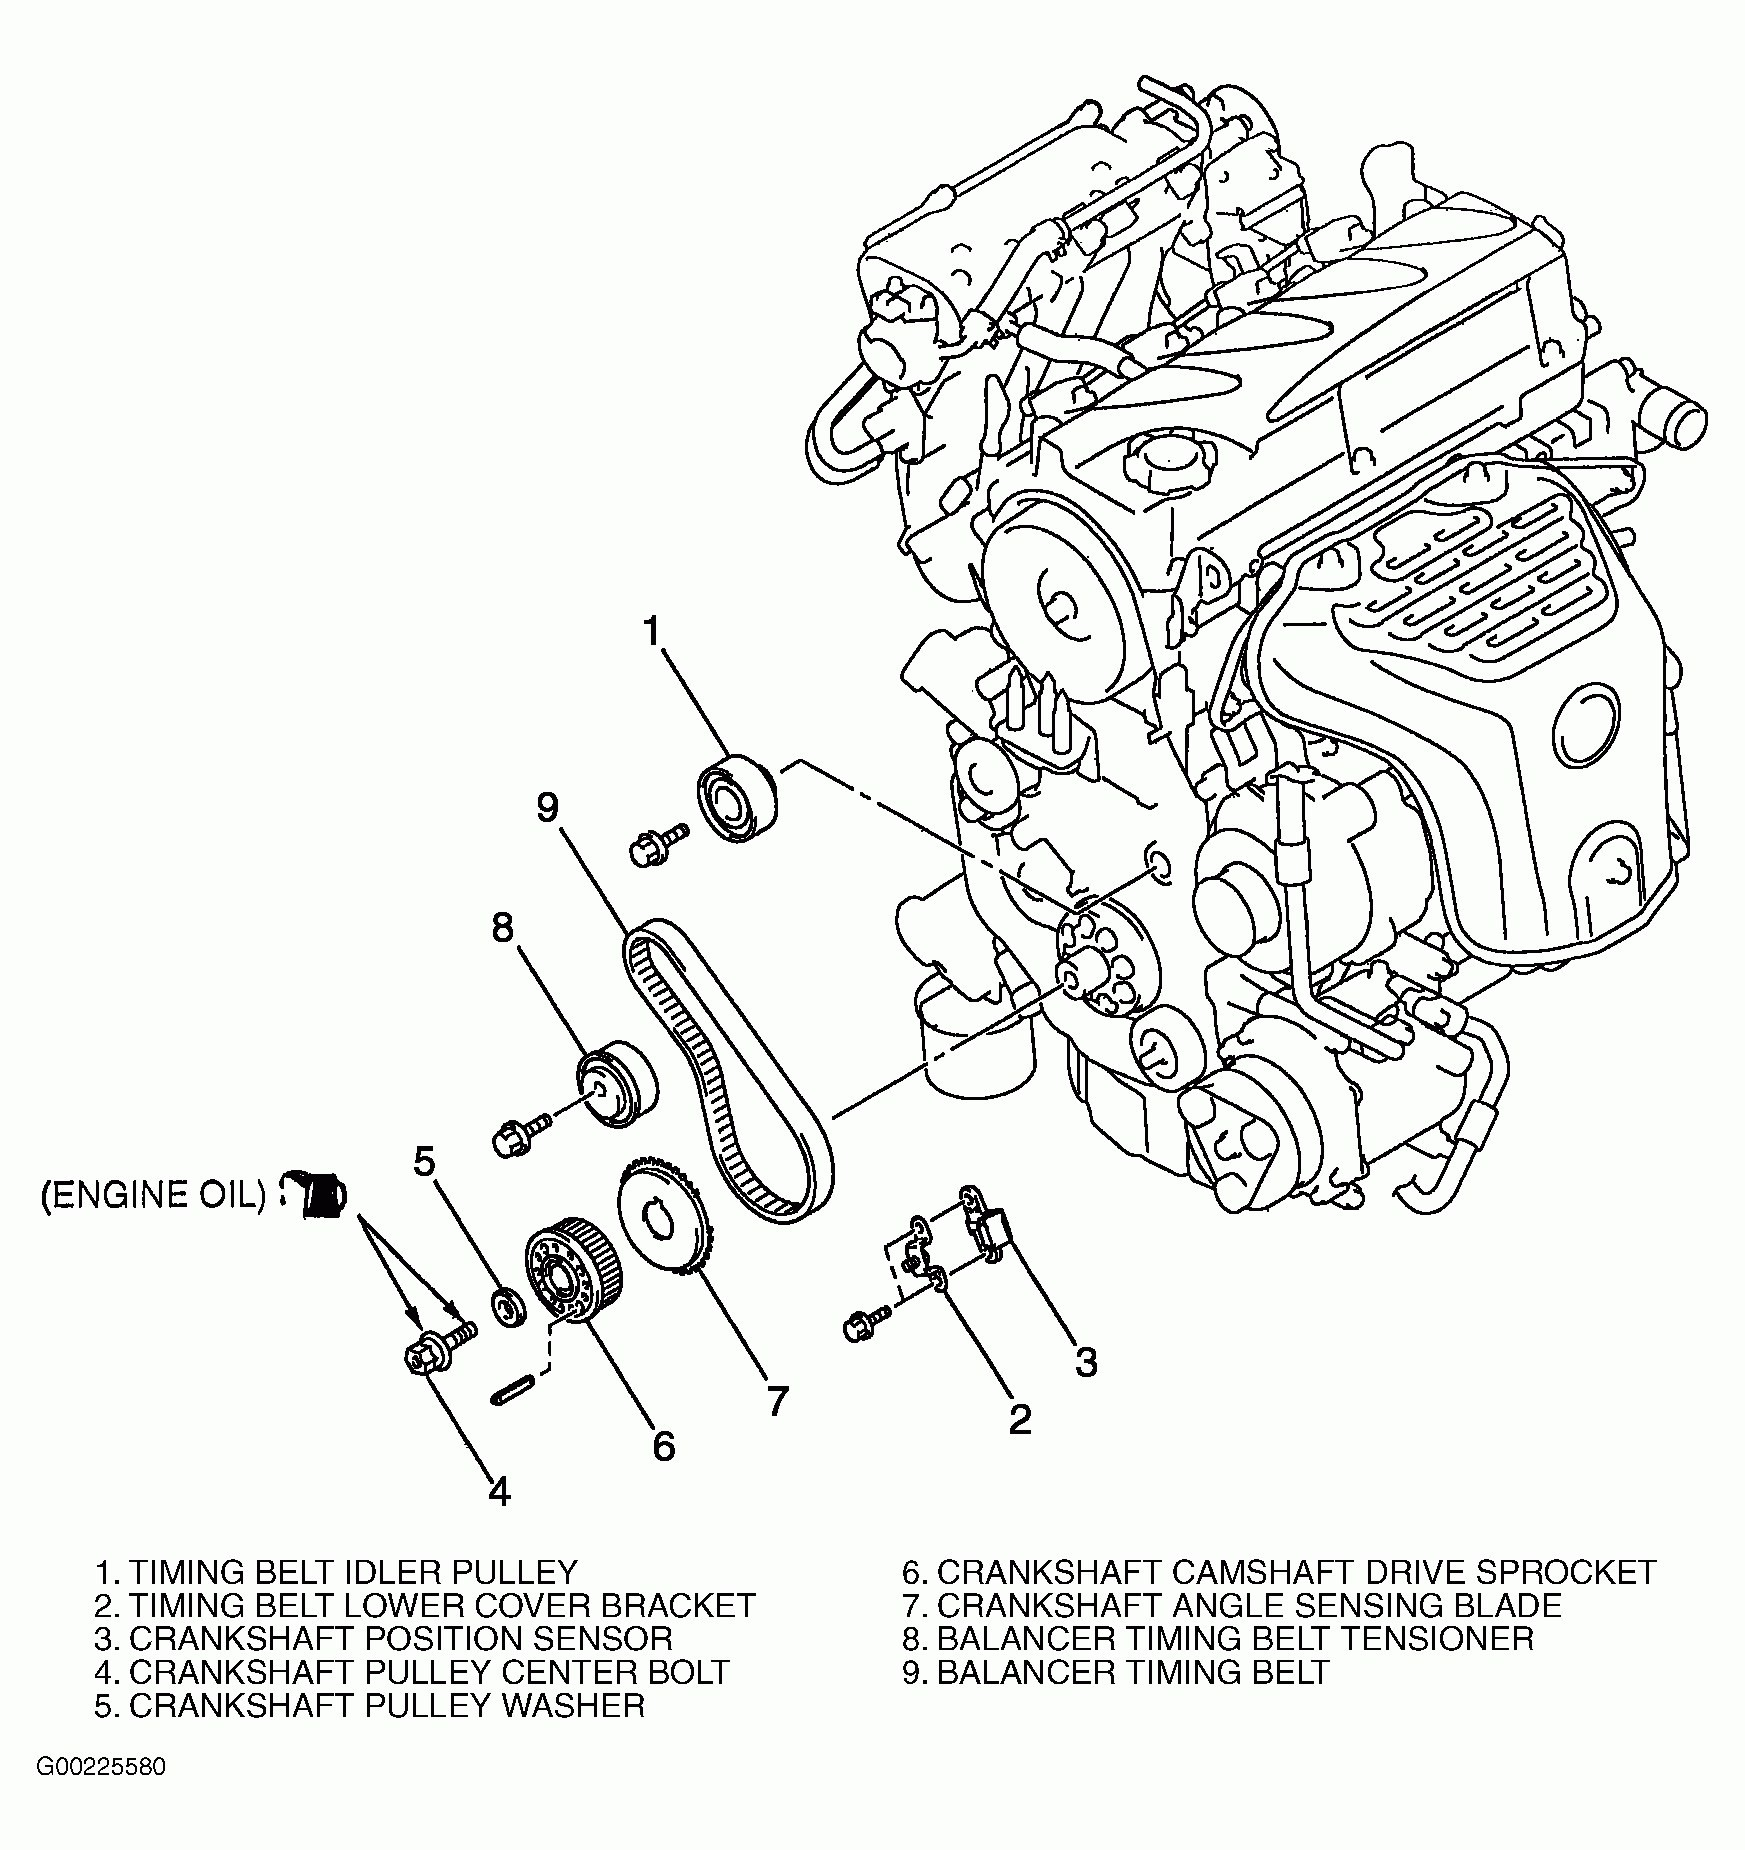 2003 Mitsubishi Outlander Engine Diagram Mitsubishi 4g91 Wiring Diagram Of 2003 Mitsubishi Outlander Engine Diagram